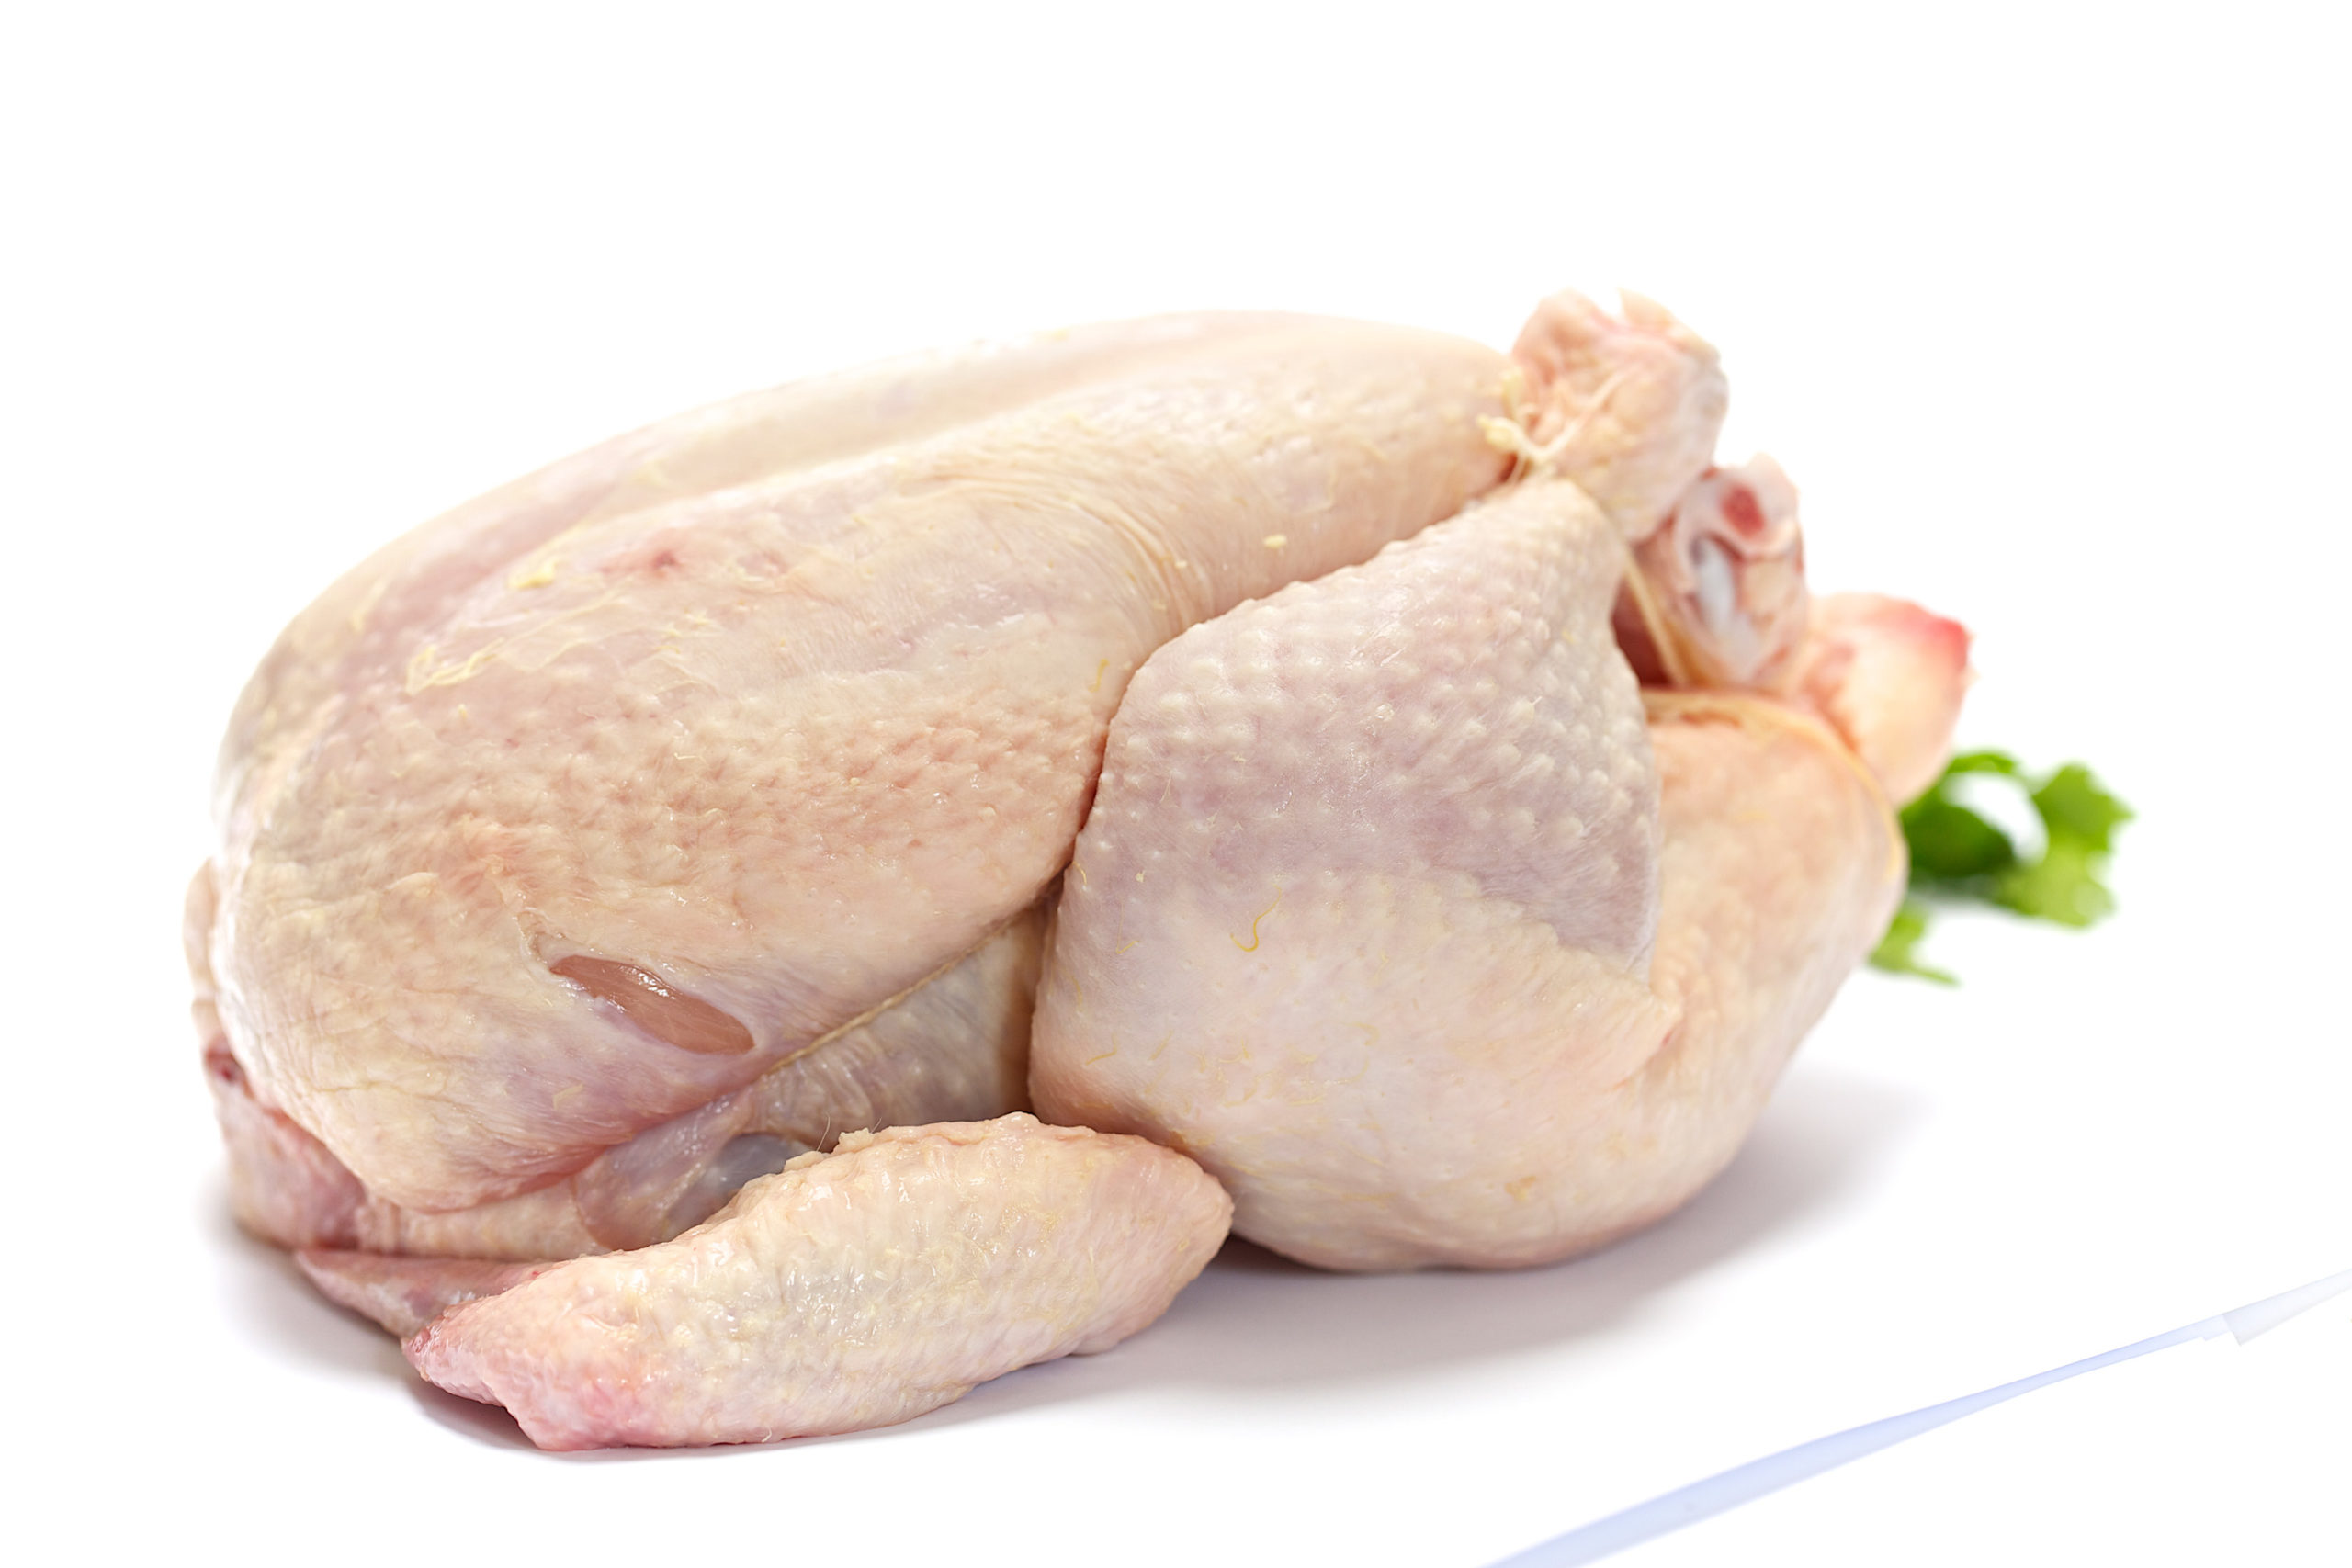 Whole Chicken, Glatt kosher